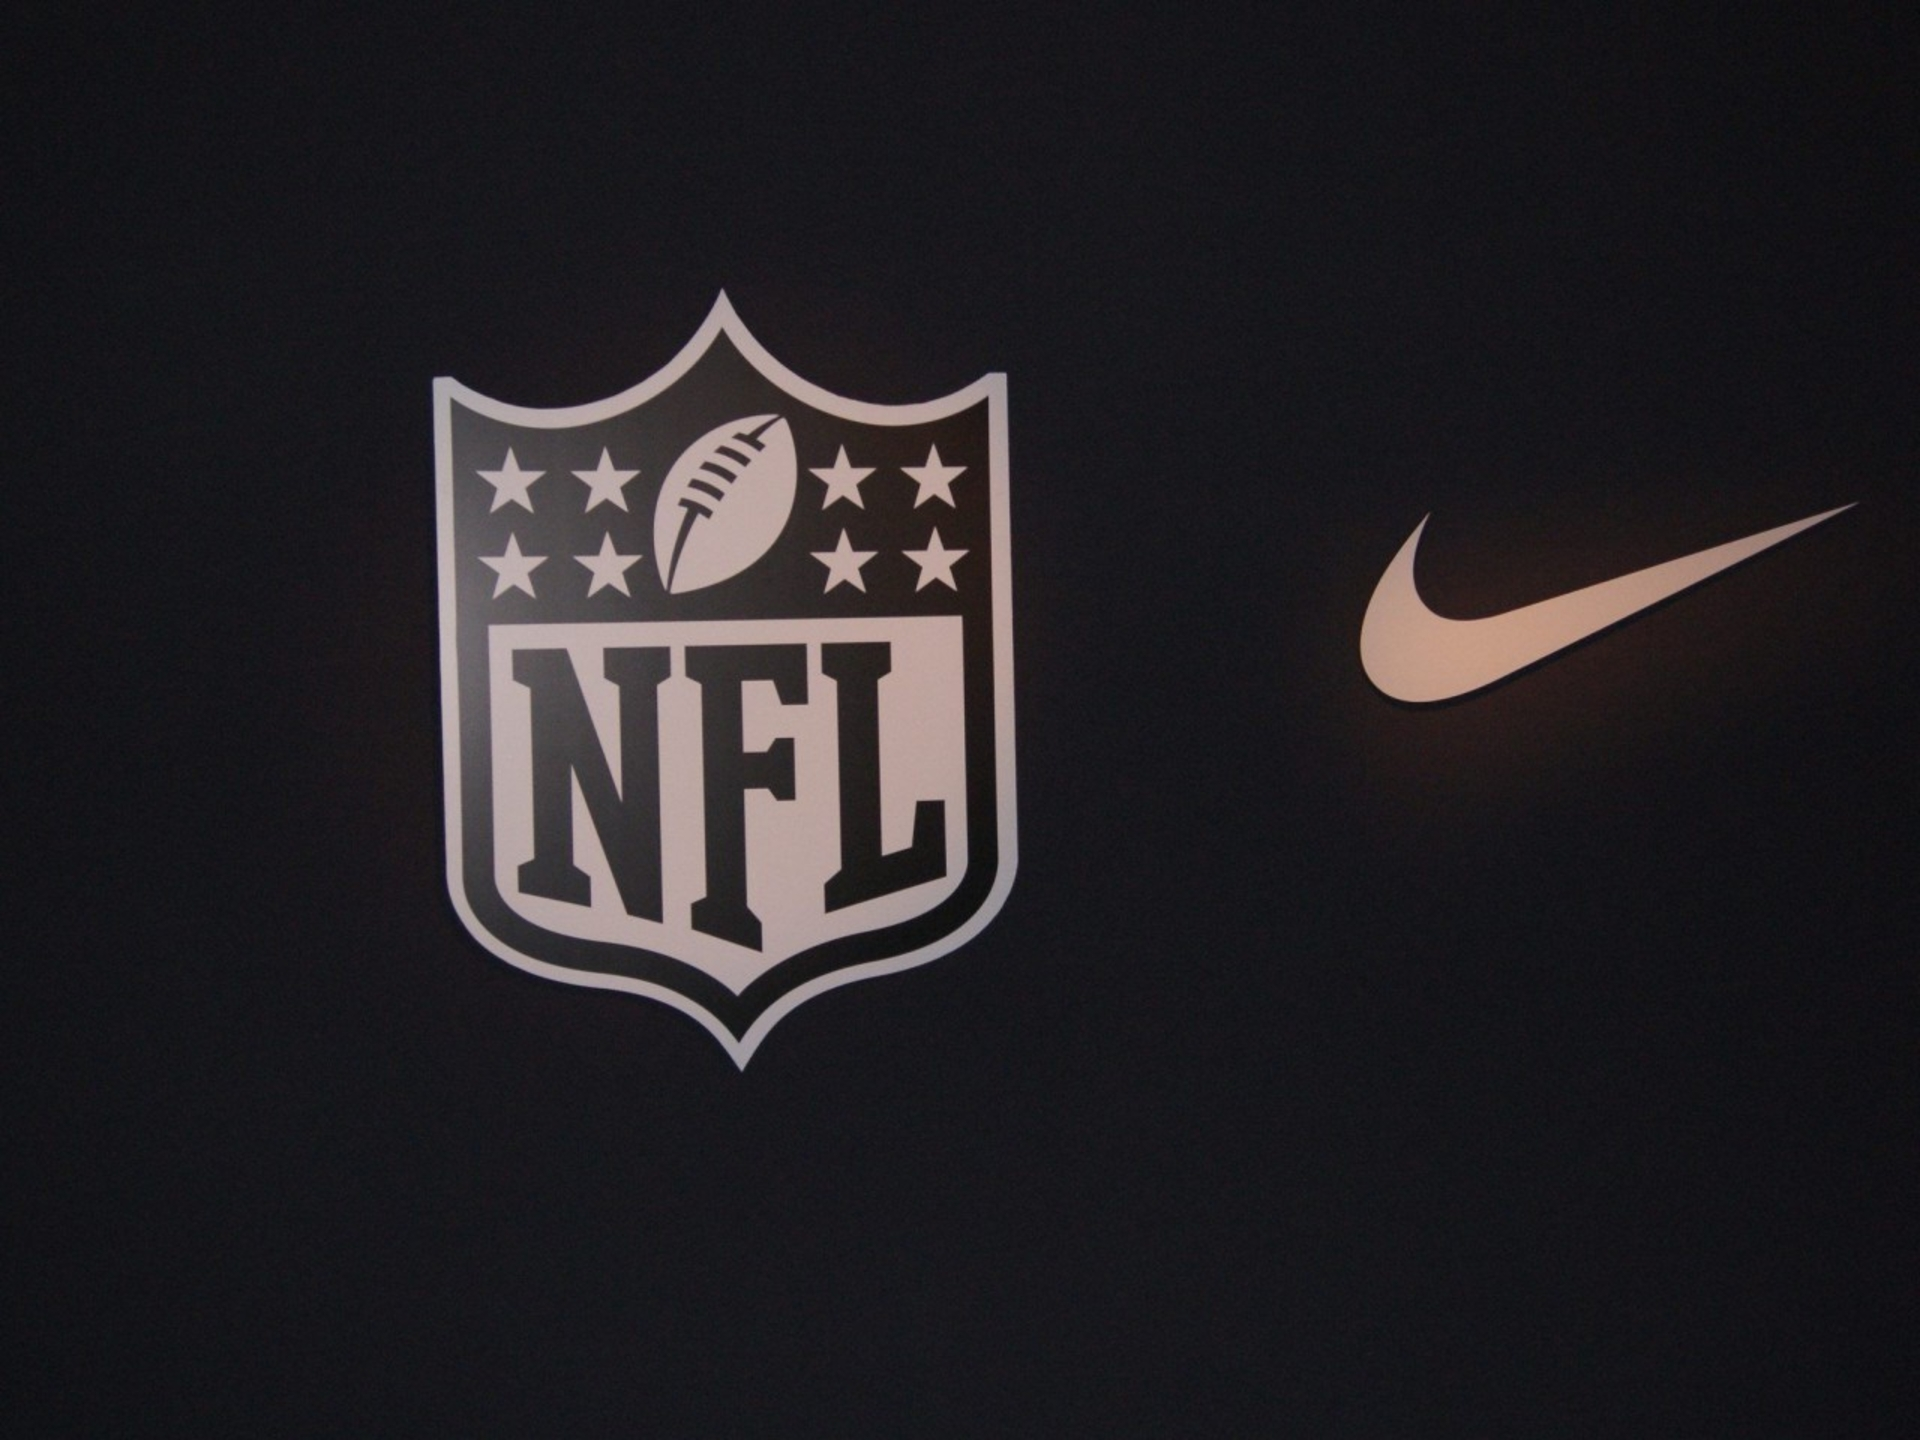 Nike Nfl Football Wallpaper 2013 10